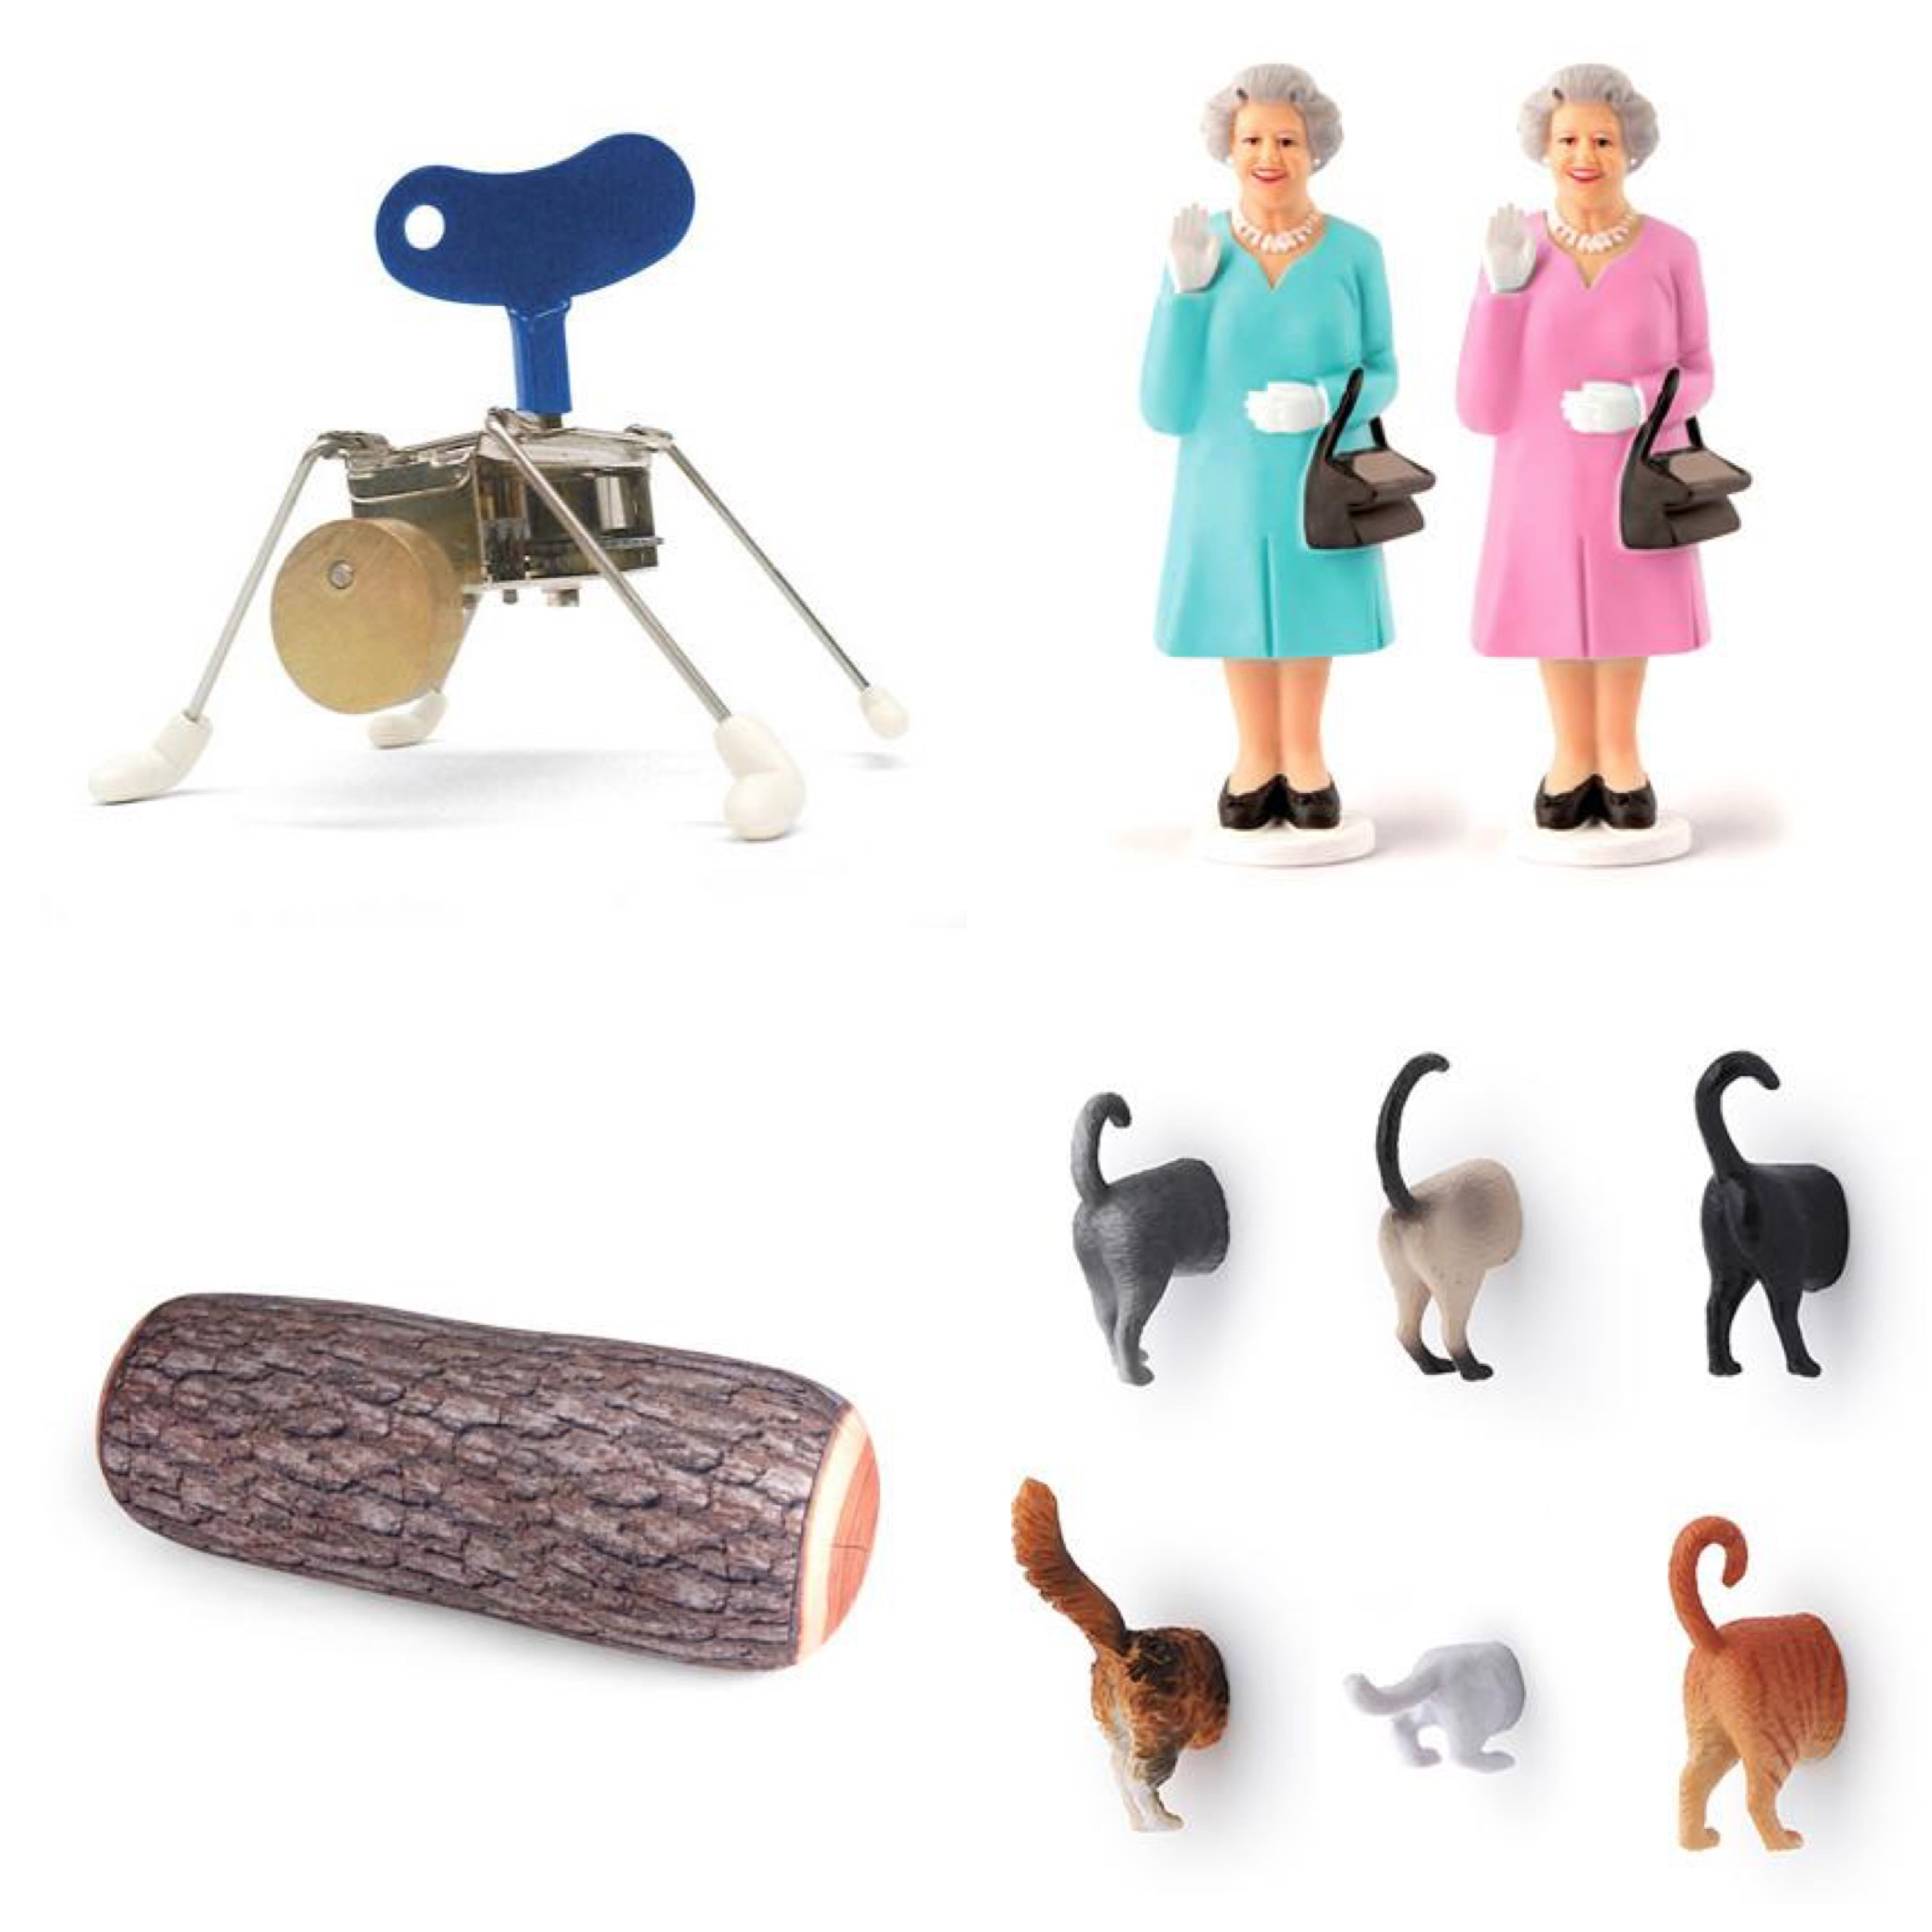 A selection of notable Kikkerland designs. Clockwise from top left: Wind-up toy, Solar Queen, Cat Butt Magnets, Log Pillow